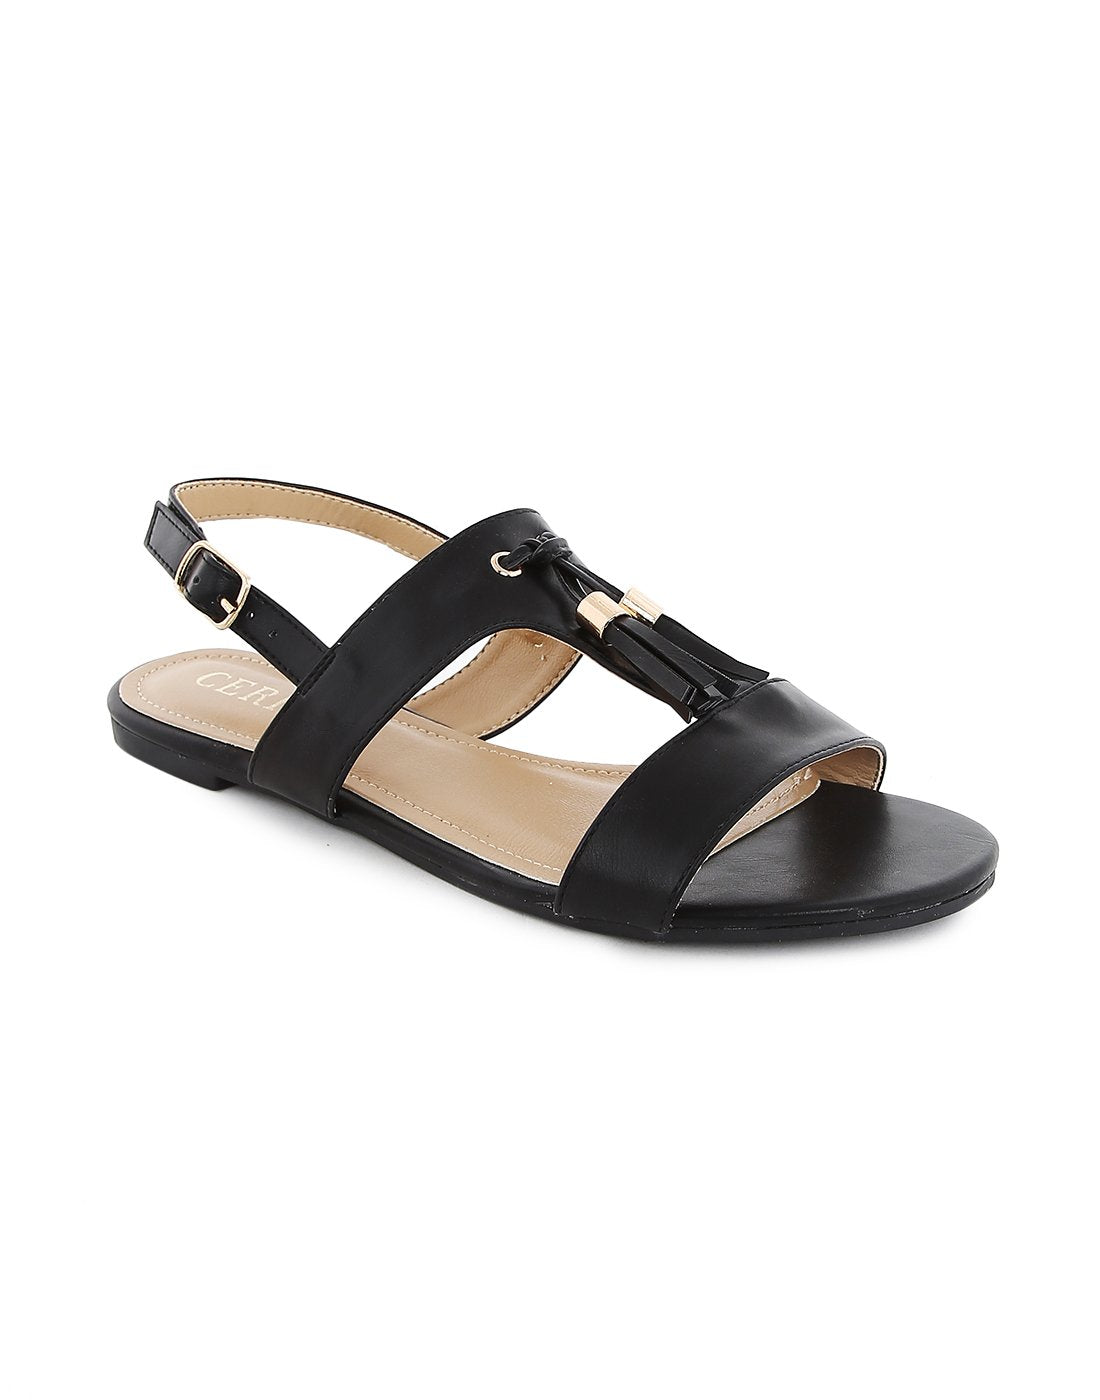 Lycus Whimsical Buckle Sandals